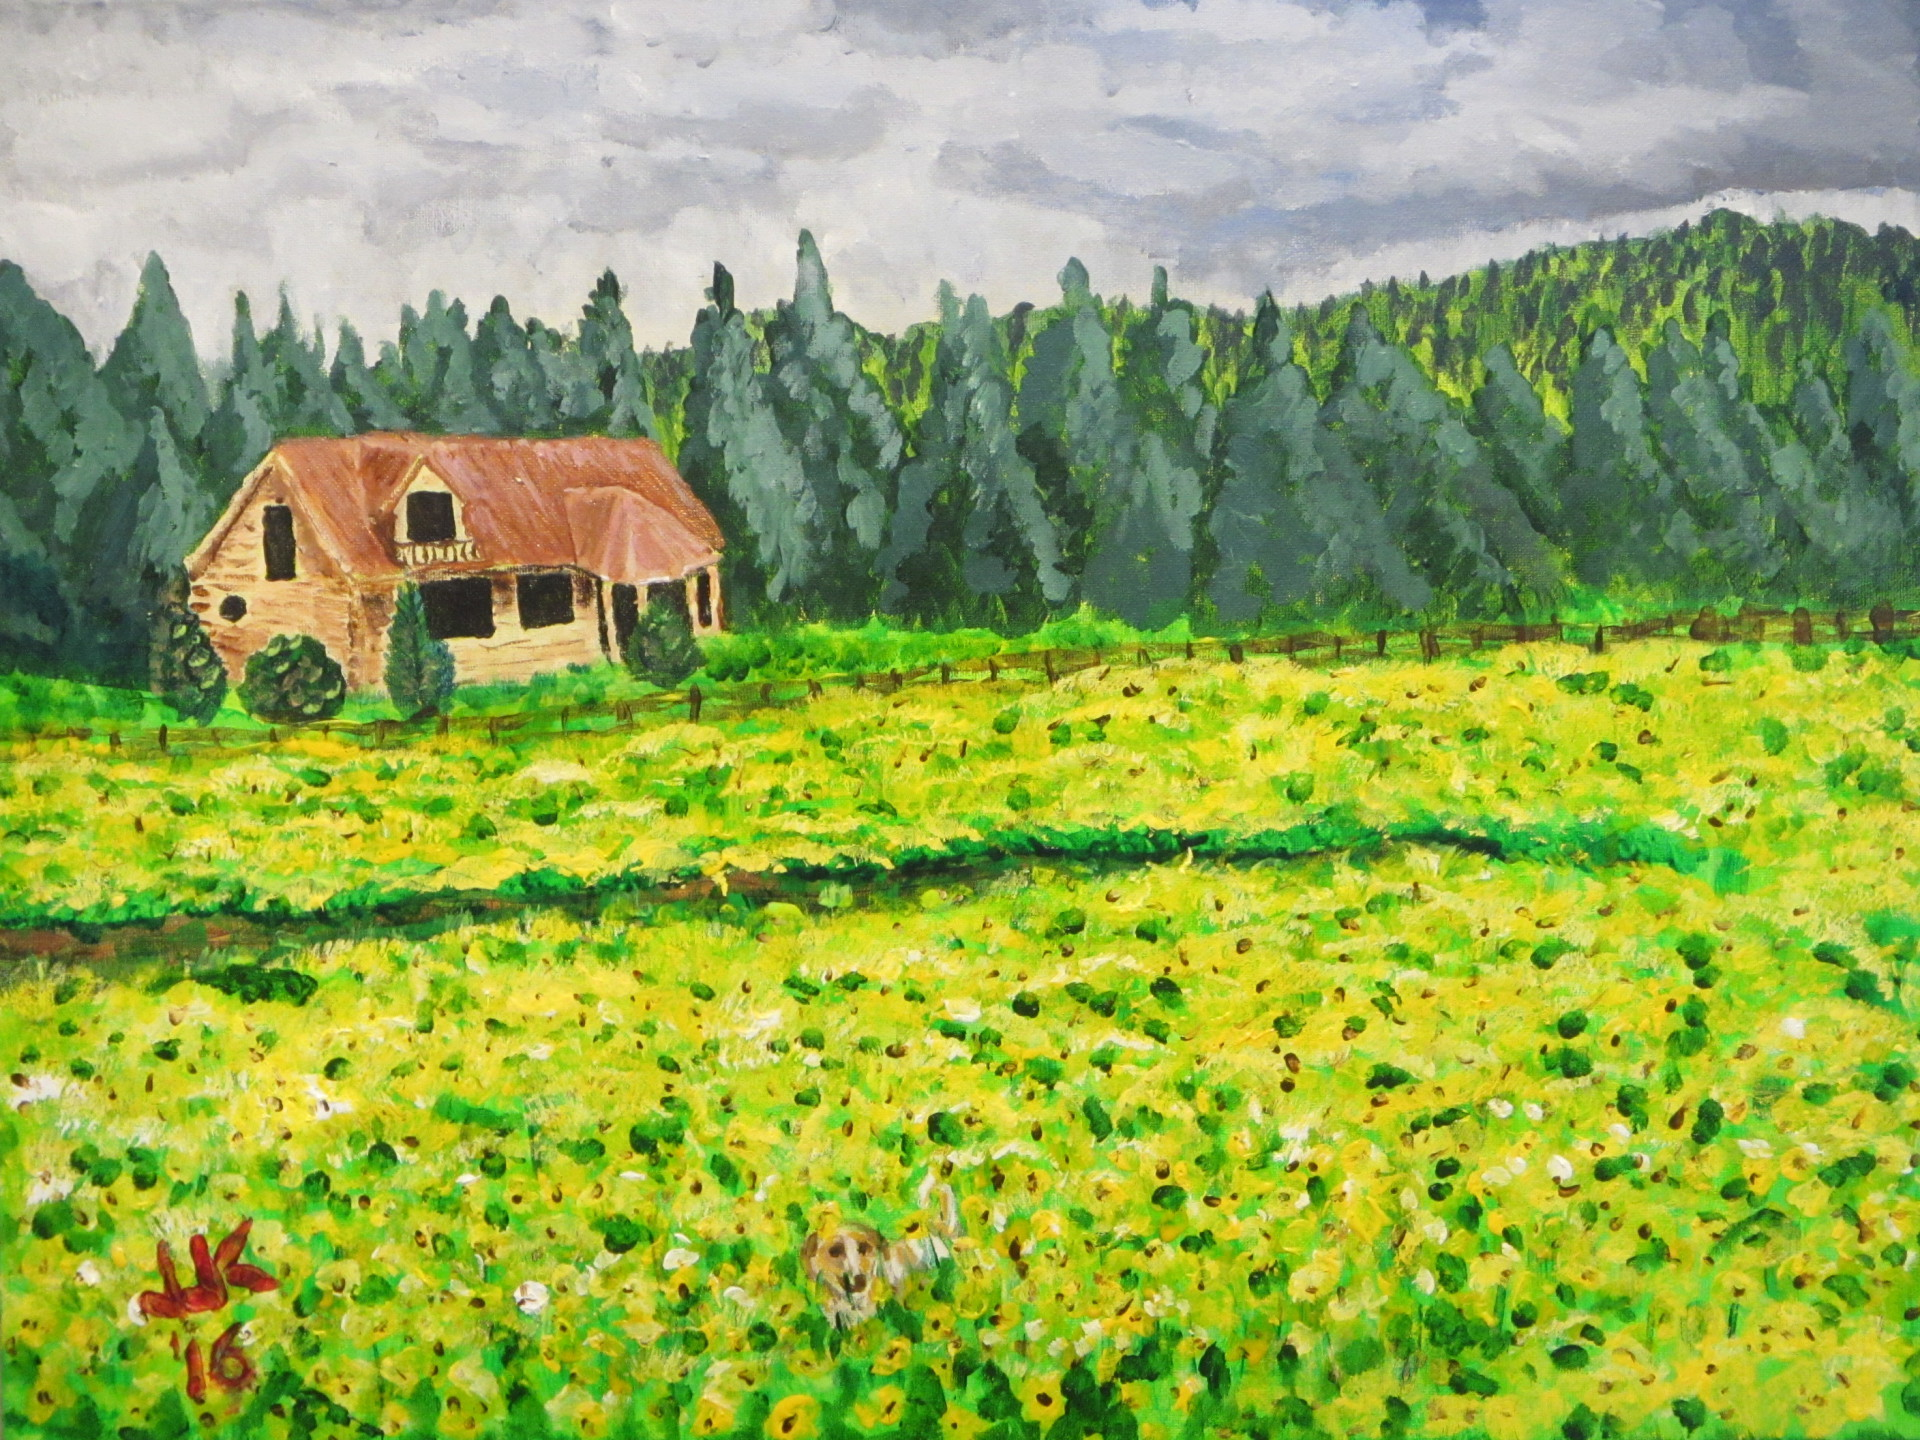 Acrylic on canvas painting of a house with a field of yellow flowers in the foreground and a yellow dog hiding in the flowers.